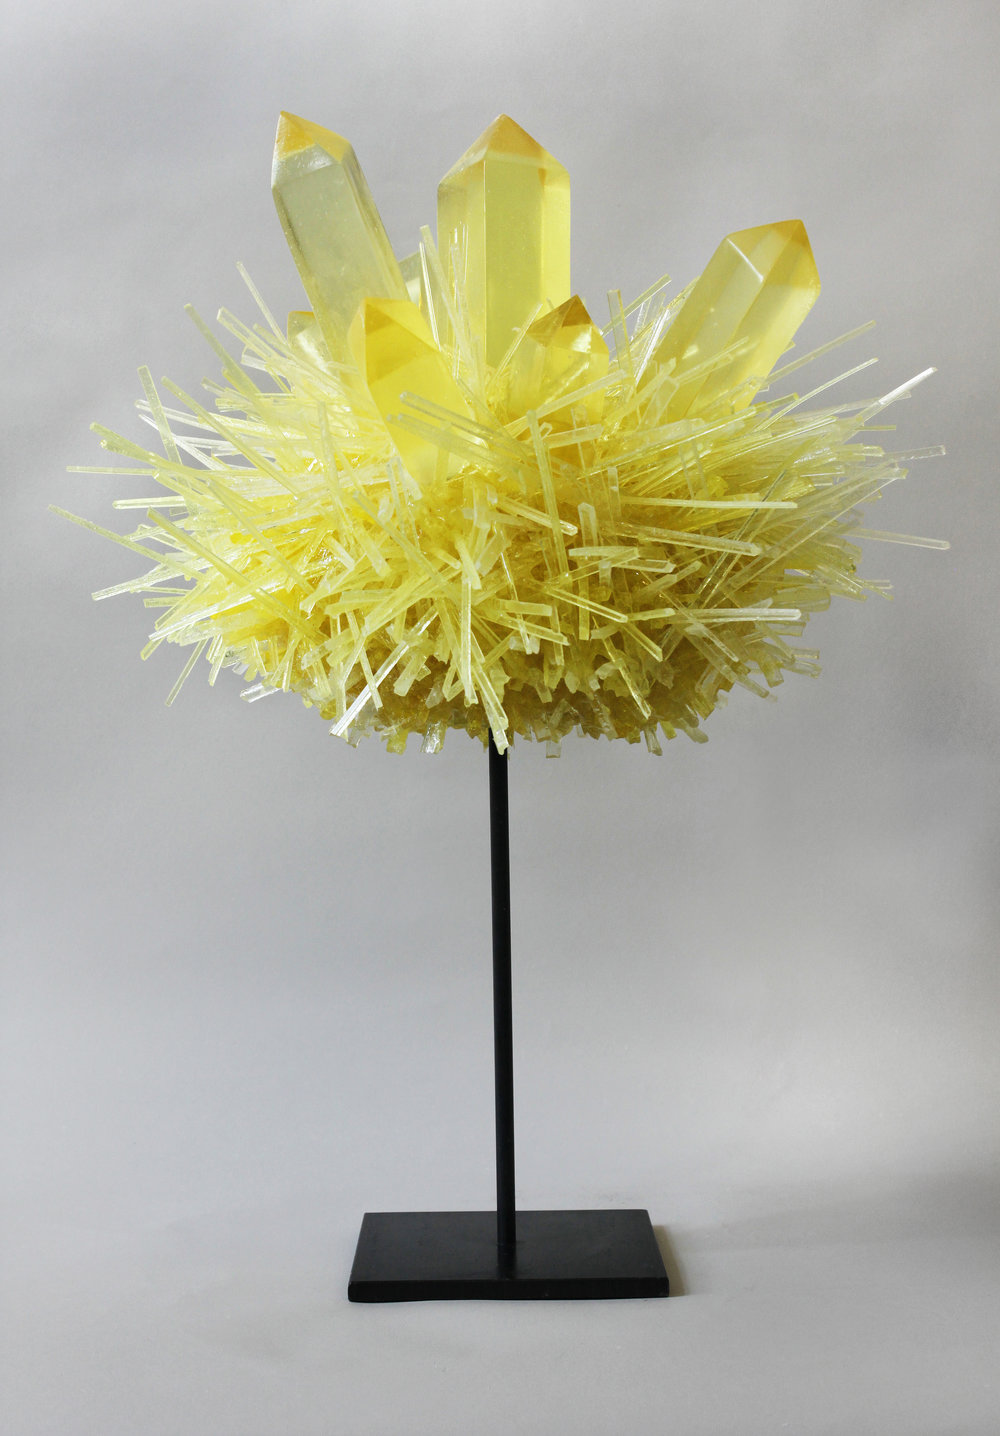 FOX_Yellow Crystal Pom_2013 copy 3.jpg